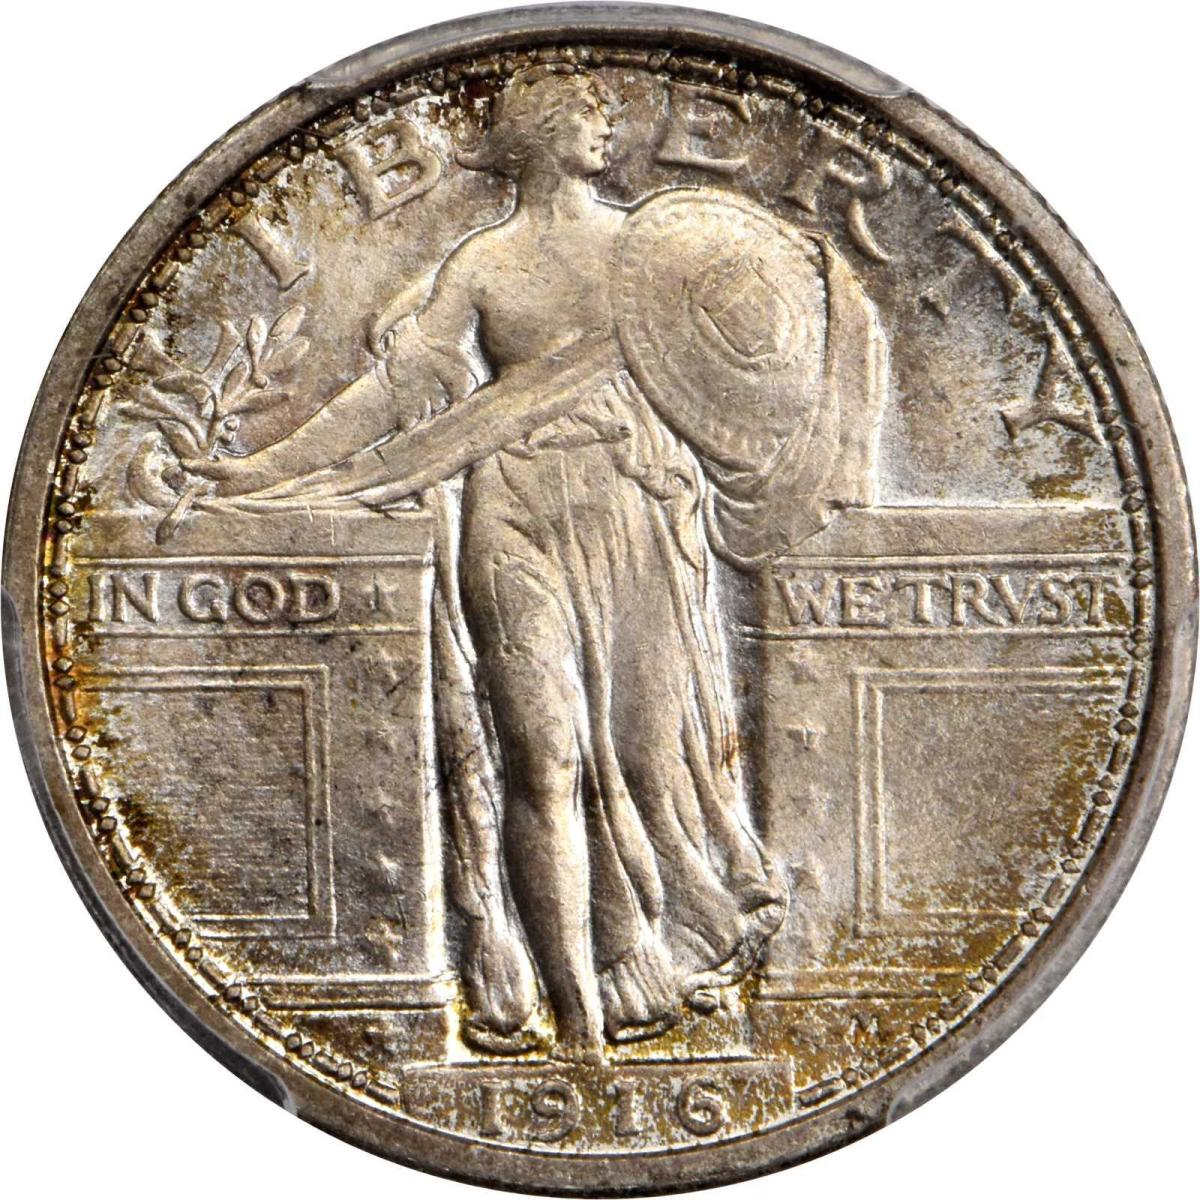 An outstanding example of a 1916 Standing Liberty quarter in MS-66+ FH (PCGS) CAC will be an eagerly-sought item at the Rarities Night on May 23. (Image courtesy of Stack's Bowers)